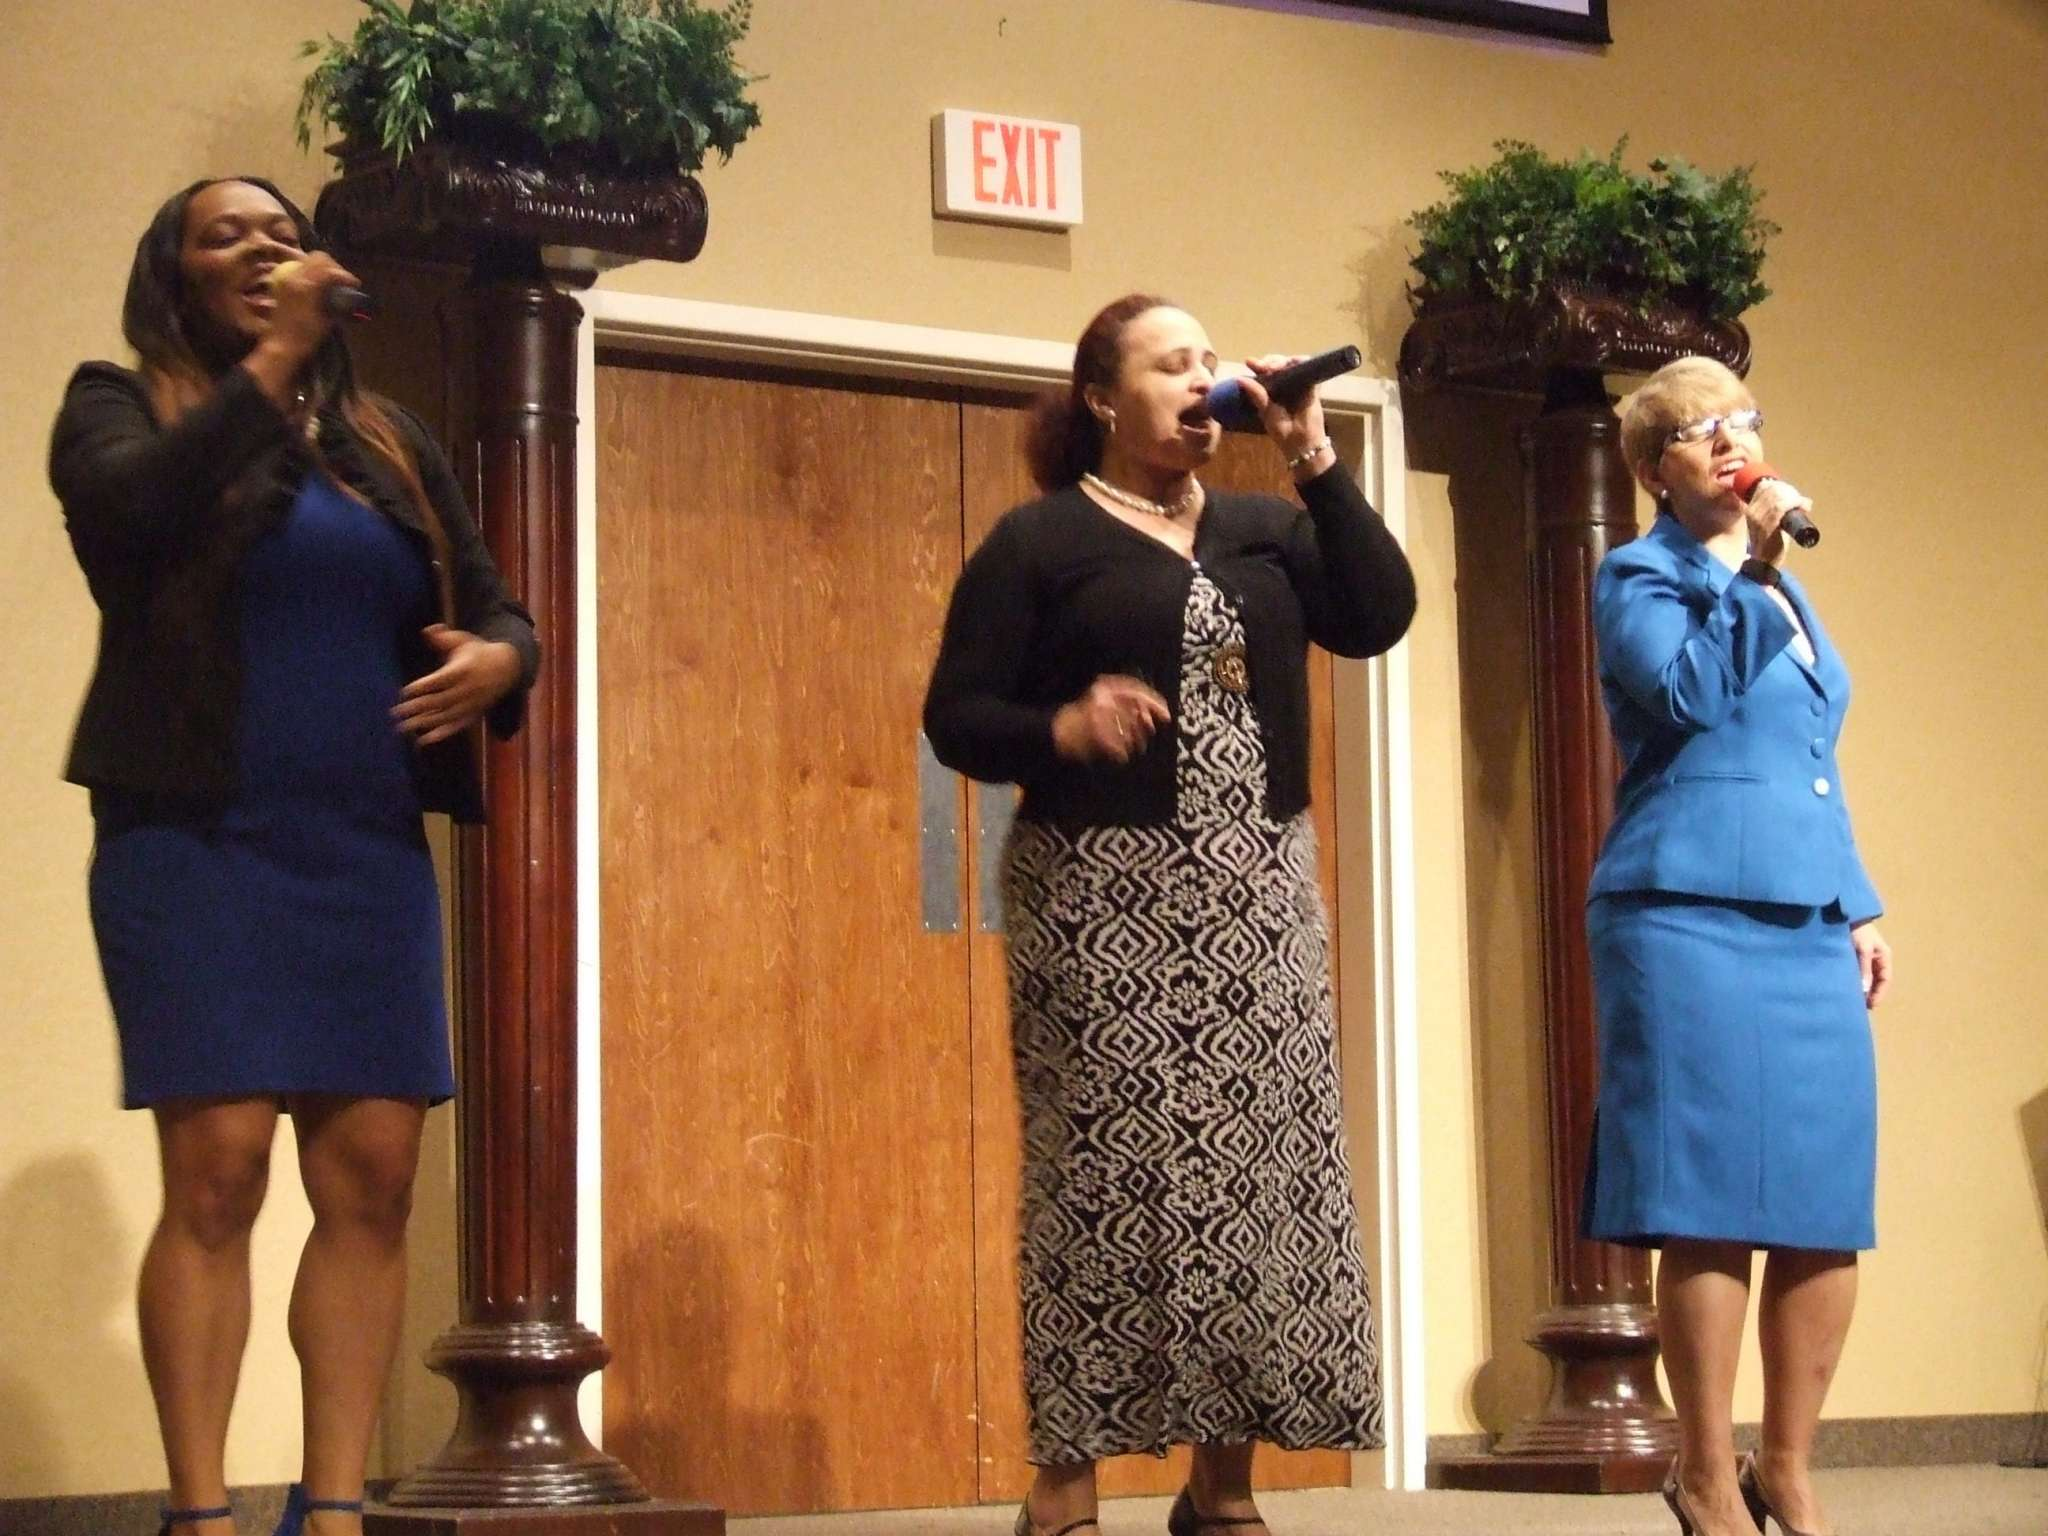 Praise and worship team singing